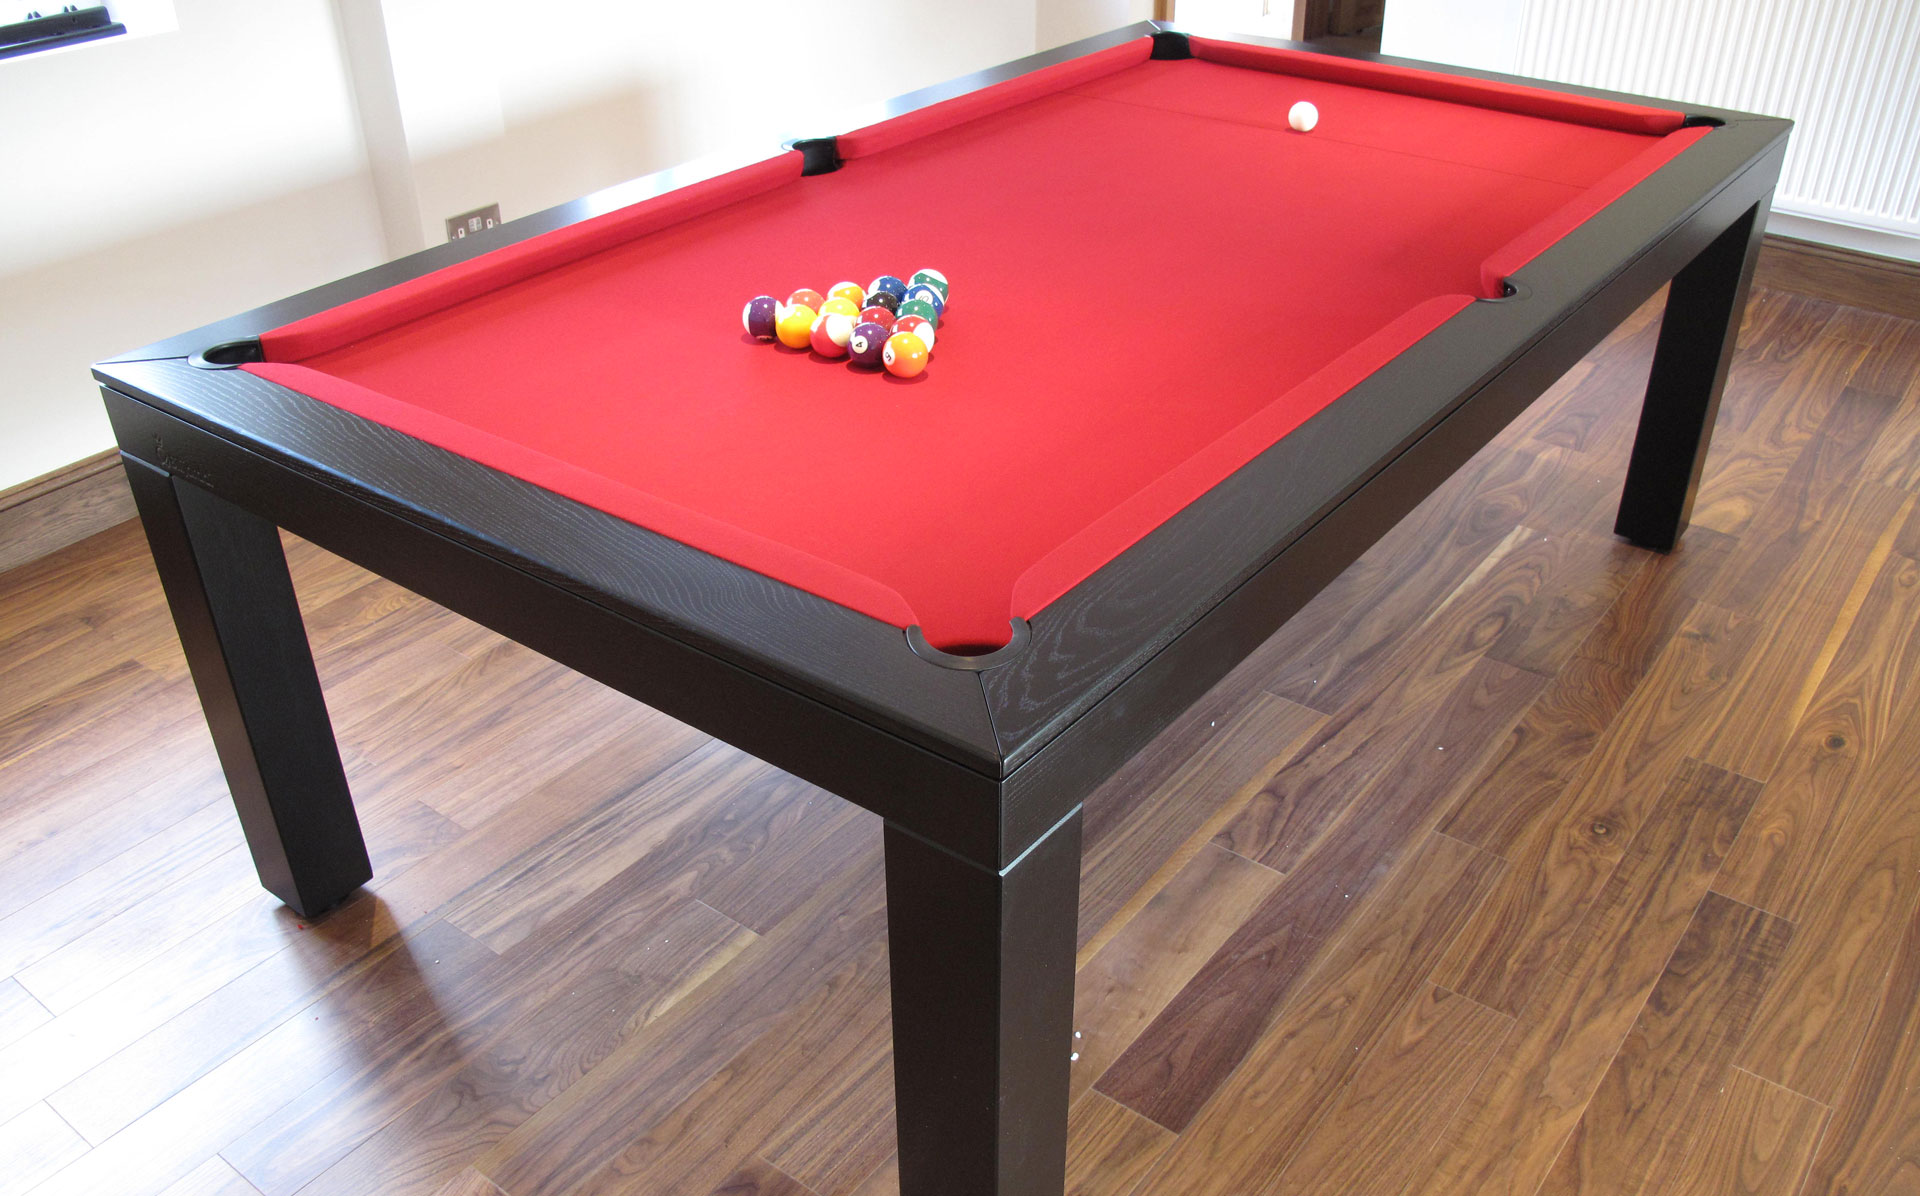 Contemporary Pool Table Luxury Pool Tables : ContemporaryPoolTable11 from luxury-pool-tables.co.uk size 1920 x 1196 jpeg 349kB